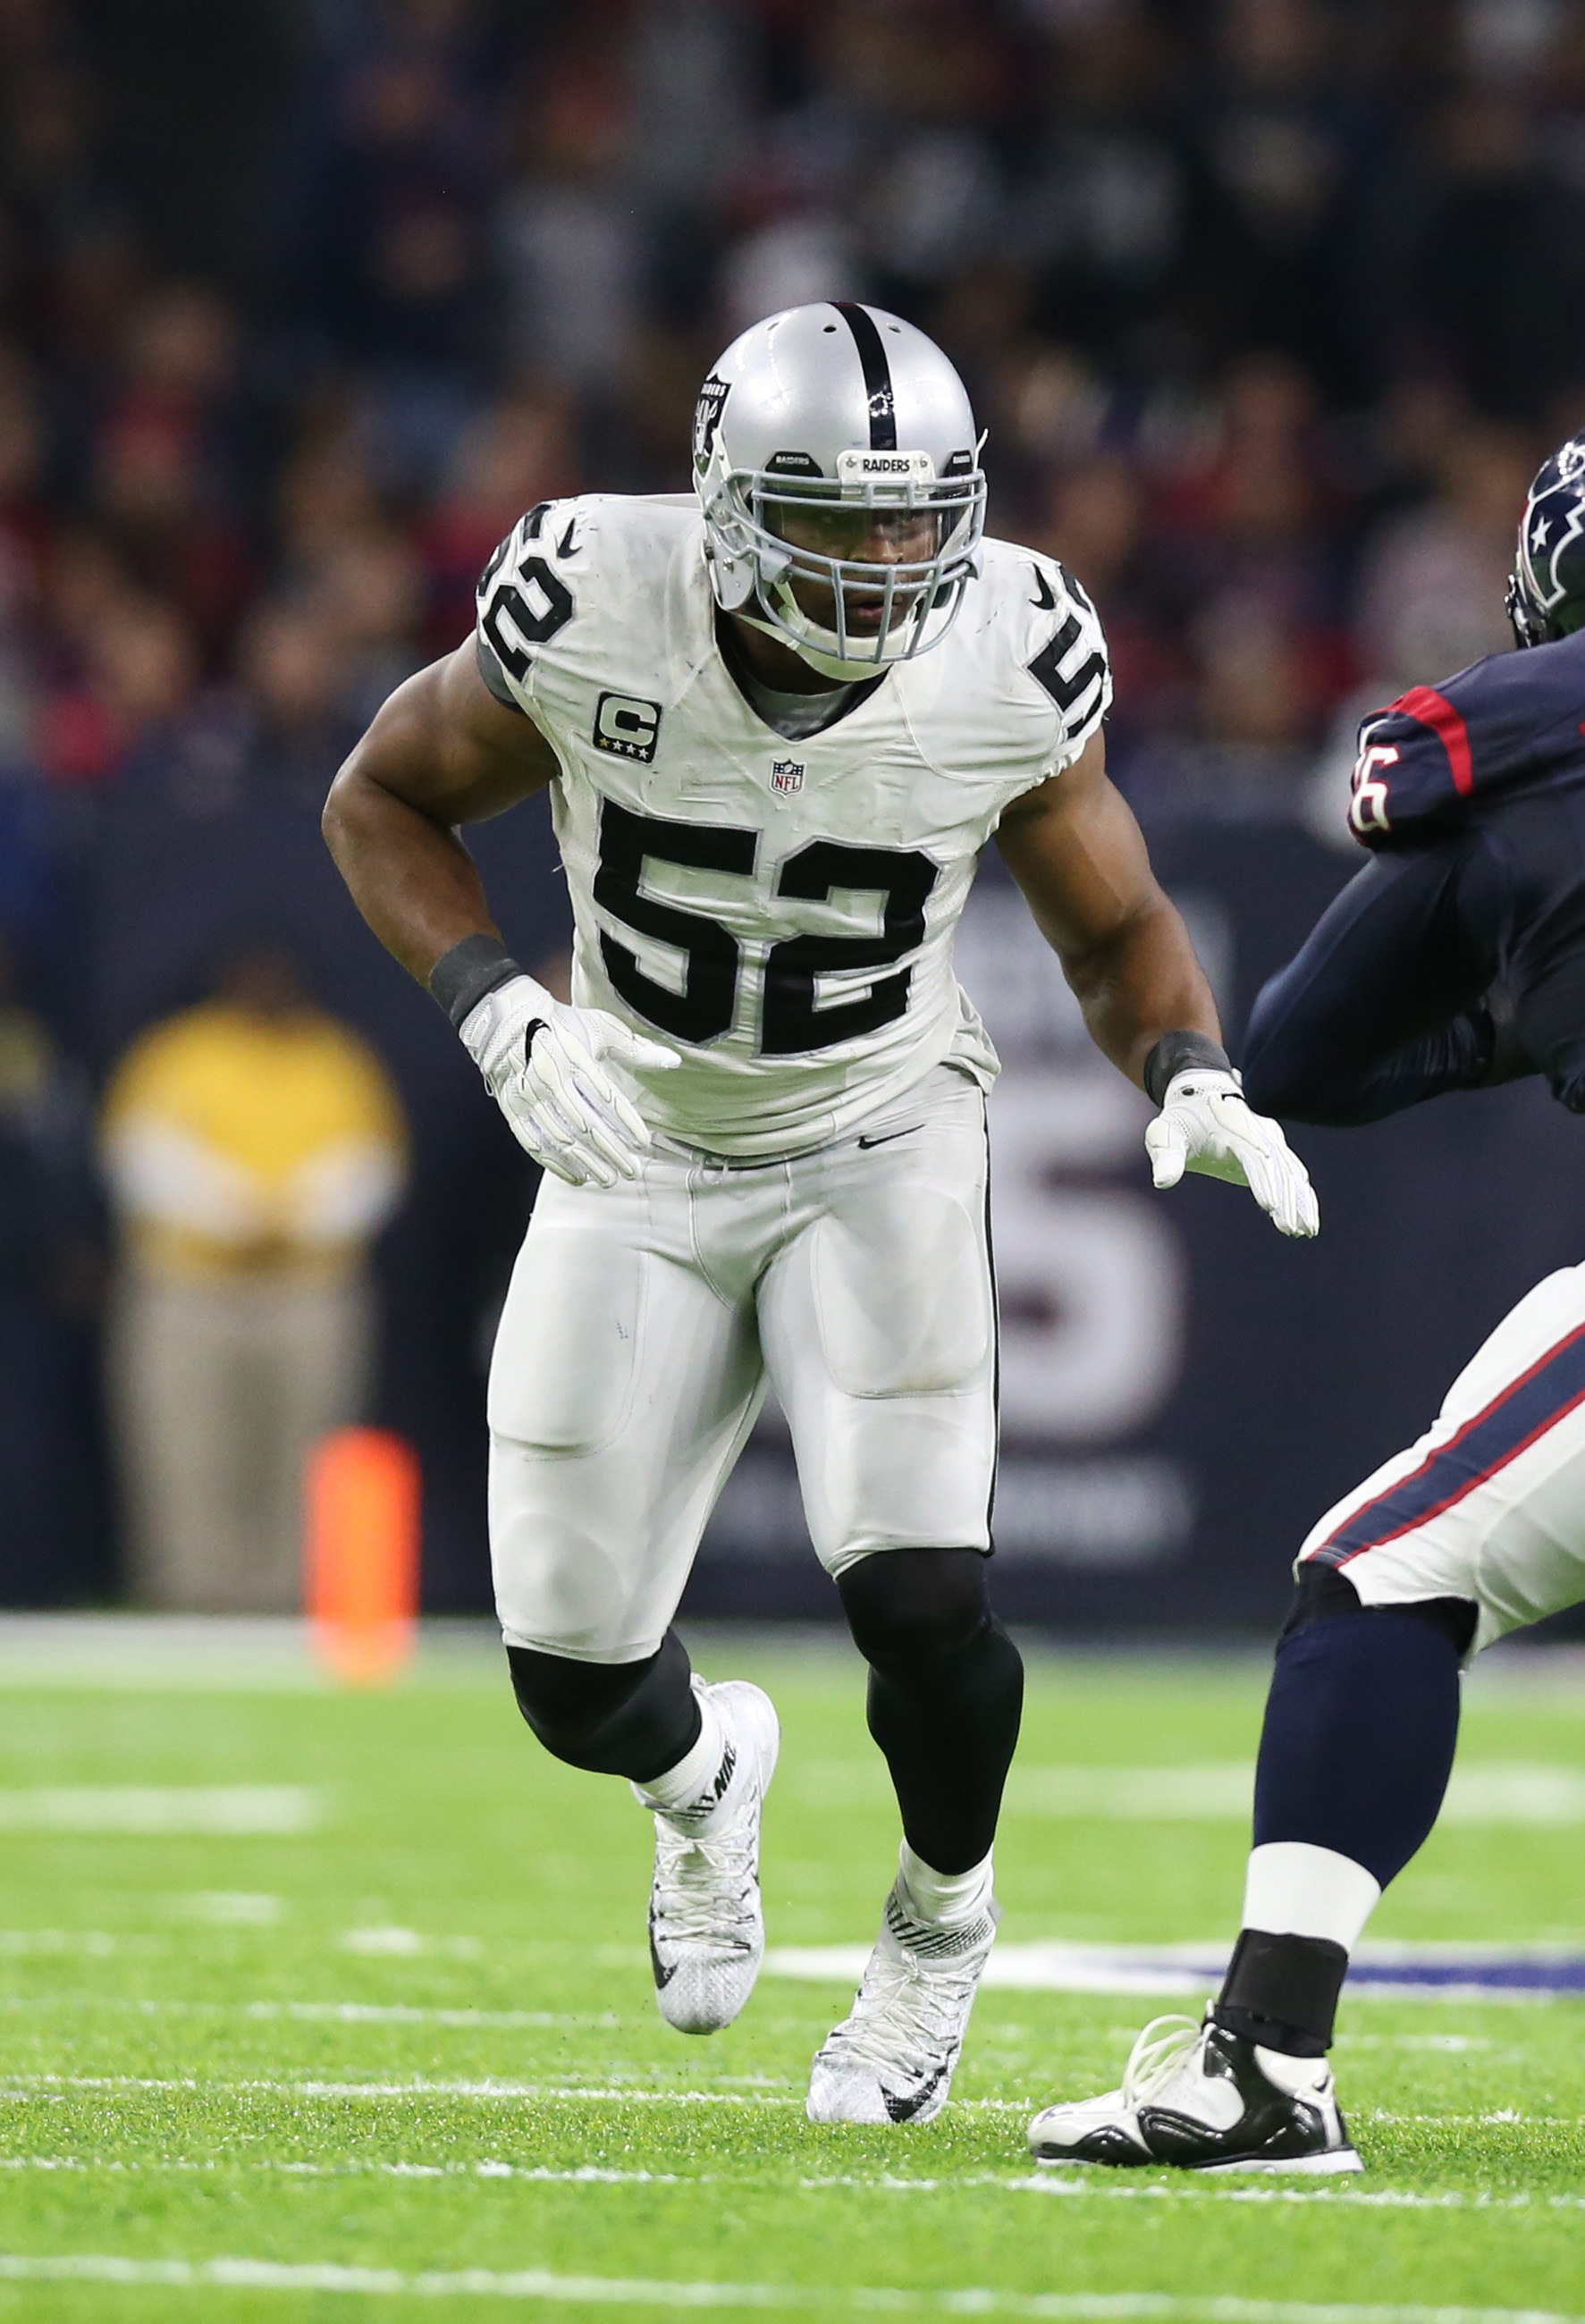 Oakland Raiders defensive end Khalil Mack is searching for a lucrative contract extension and hes planning to not attend this weeks minicamp Ian